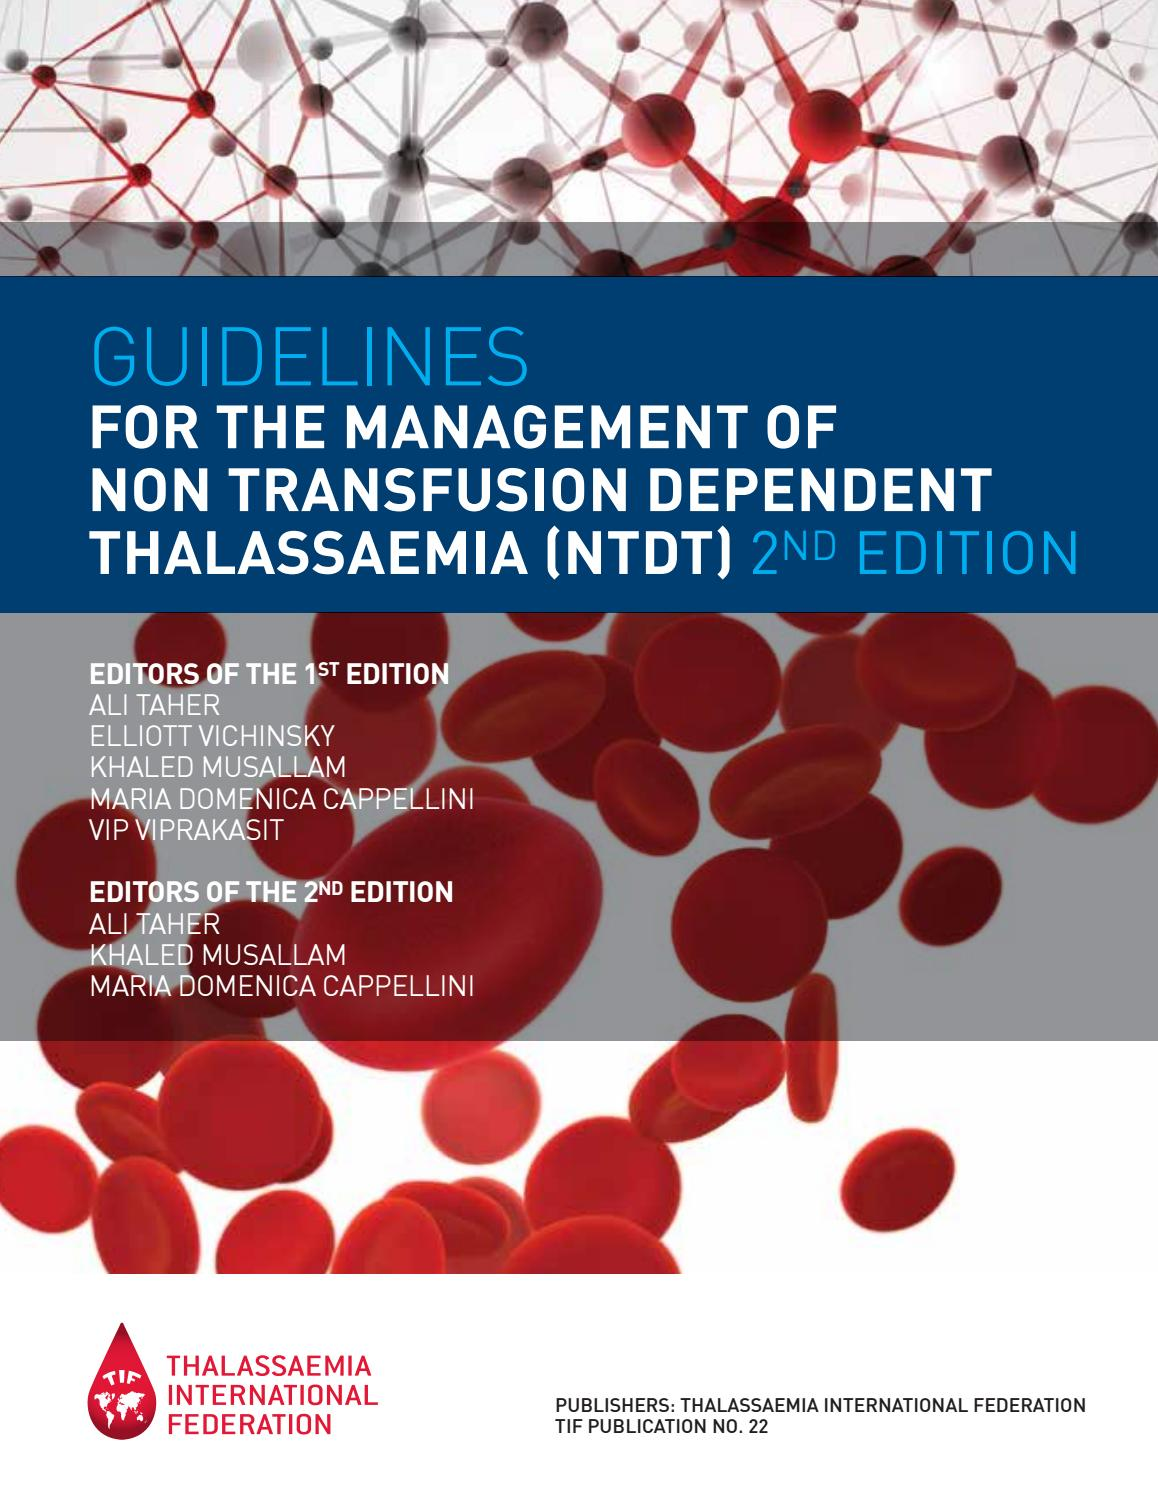 nuova versione online qui stile squisito Guidelines for the Management of Non-Transfusion Dependent ...